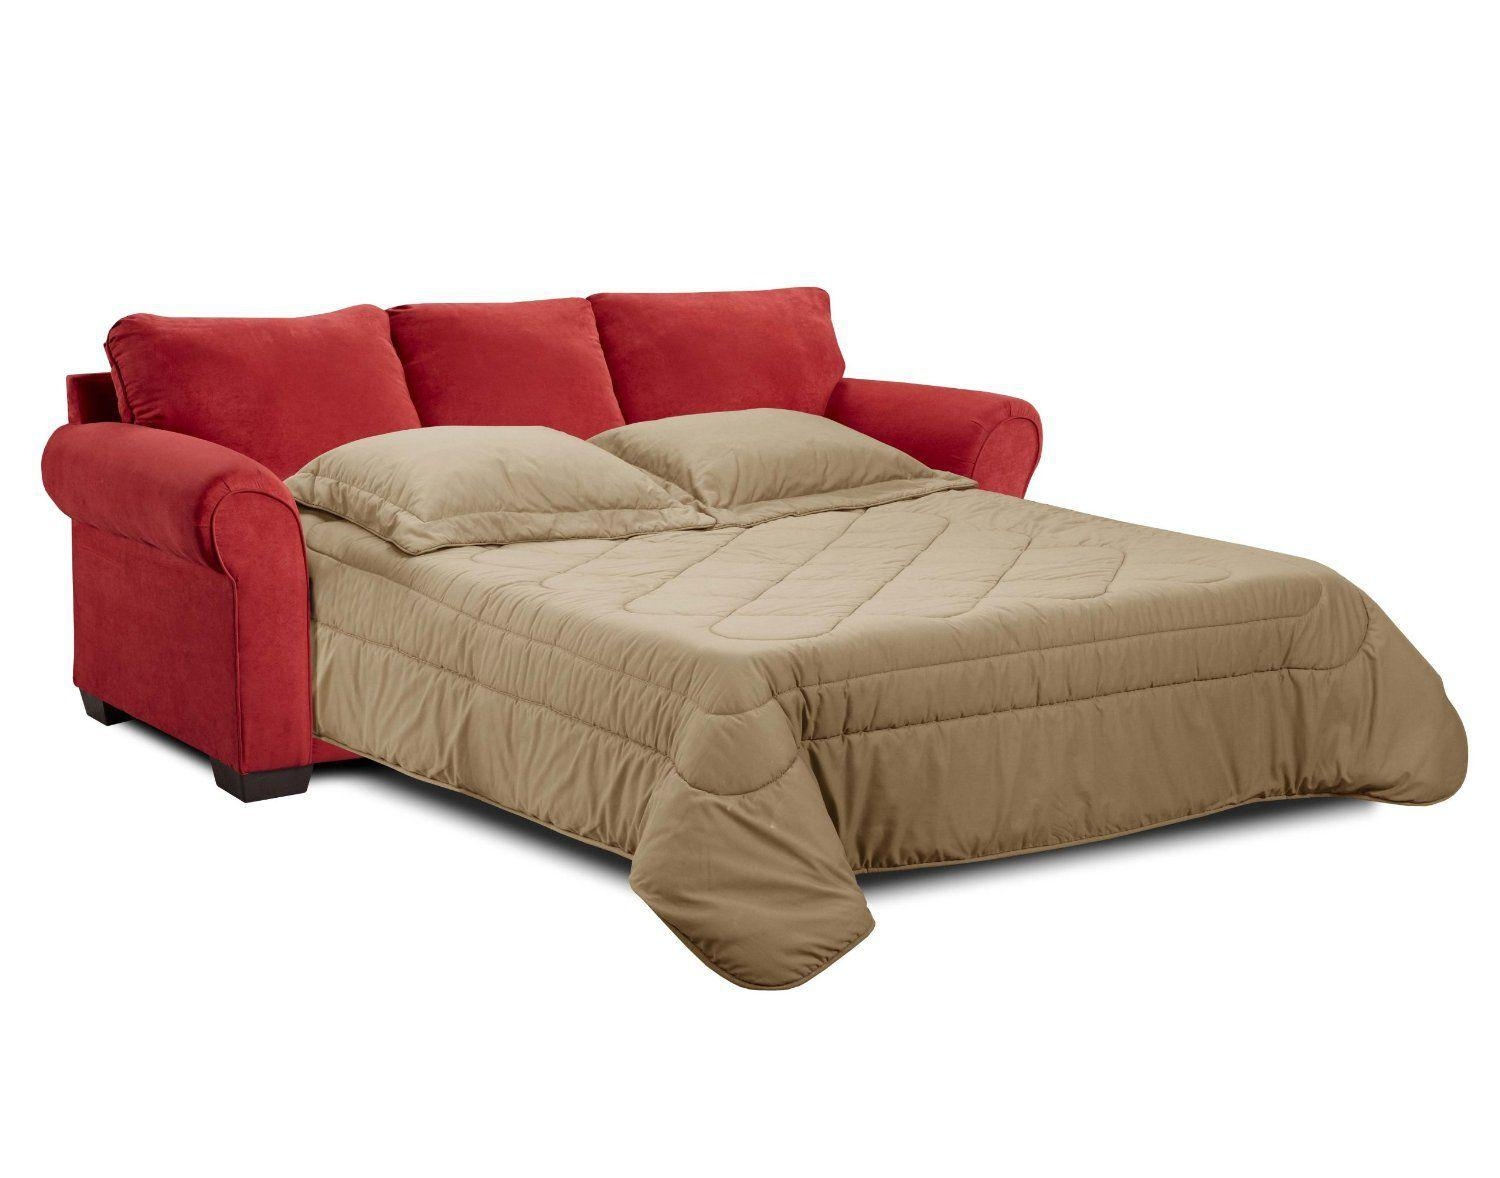 Sofas Center : Sears Sleeper Sofas And Sectionals Sofa Mattress Pertaining To Sears Sleeper Sofas (View 14 of 20)